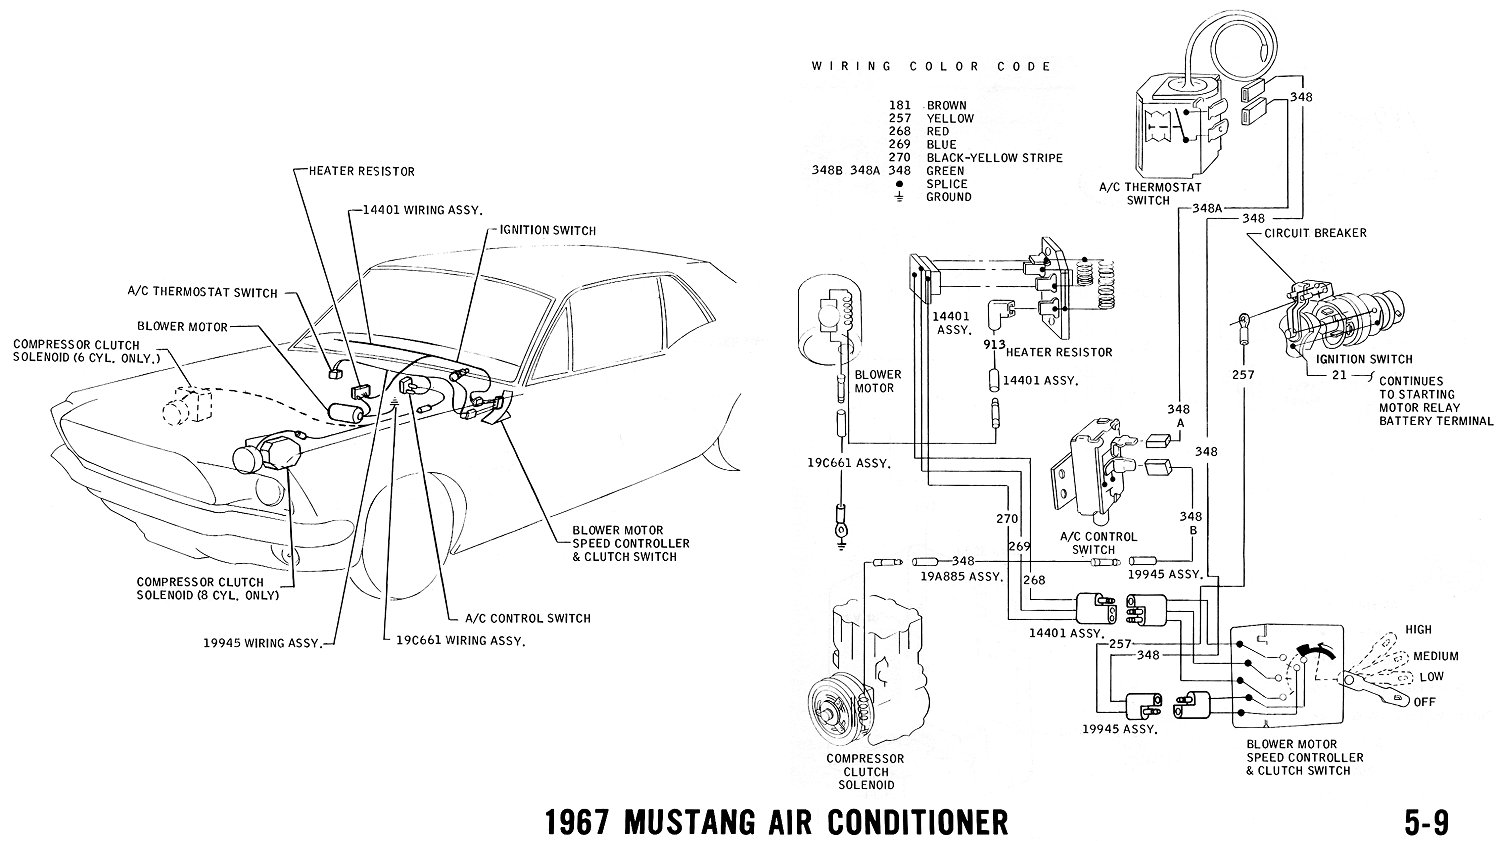 67ac 1967 mustang wiring and vacuum diagrams average joe restoration 1969 mustang instrument cluster wiring diagram at n-0.co